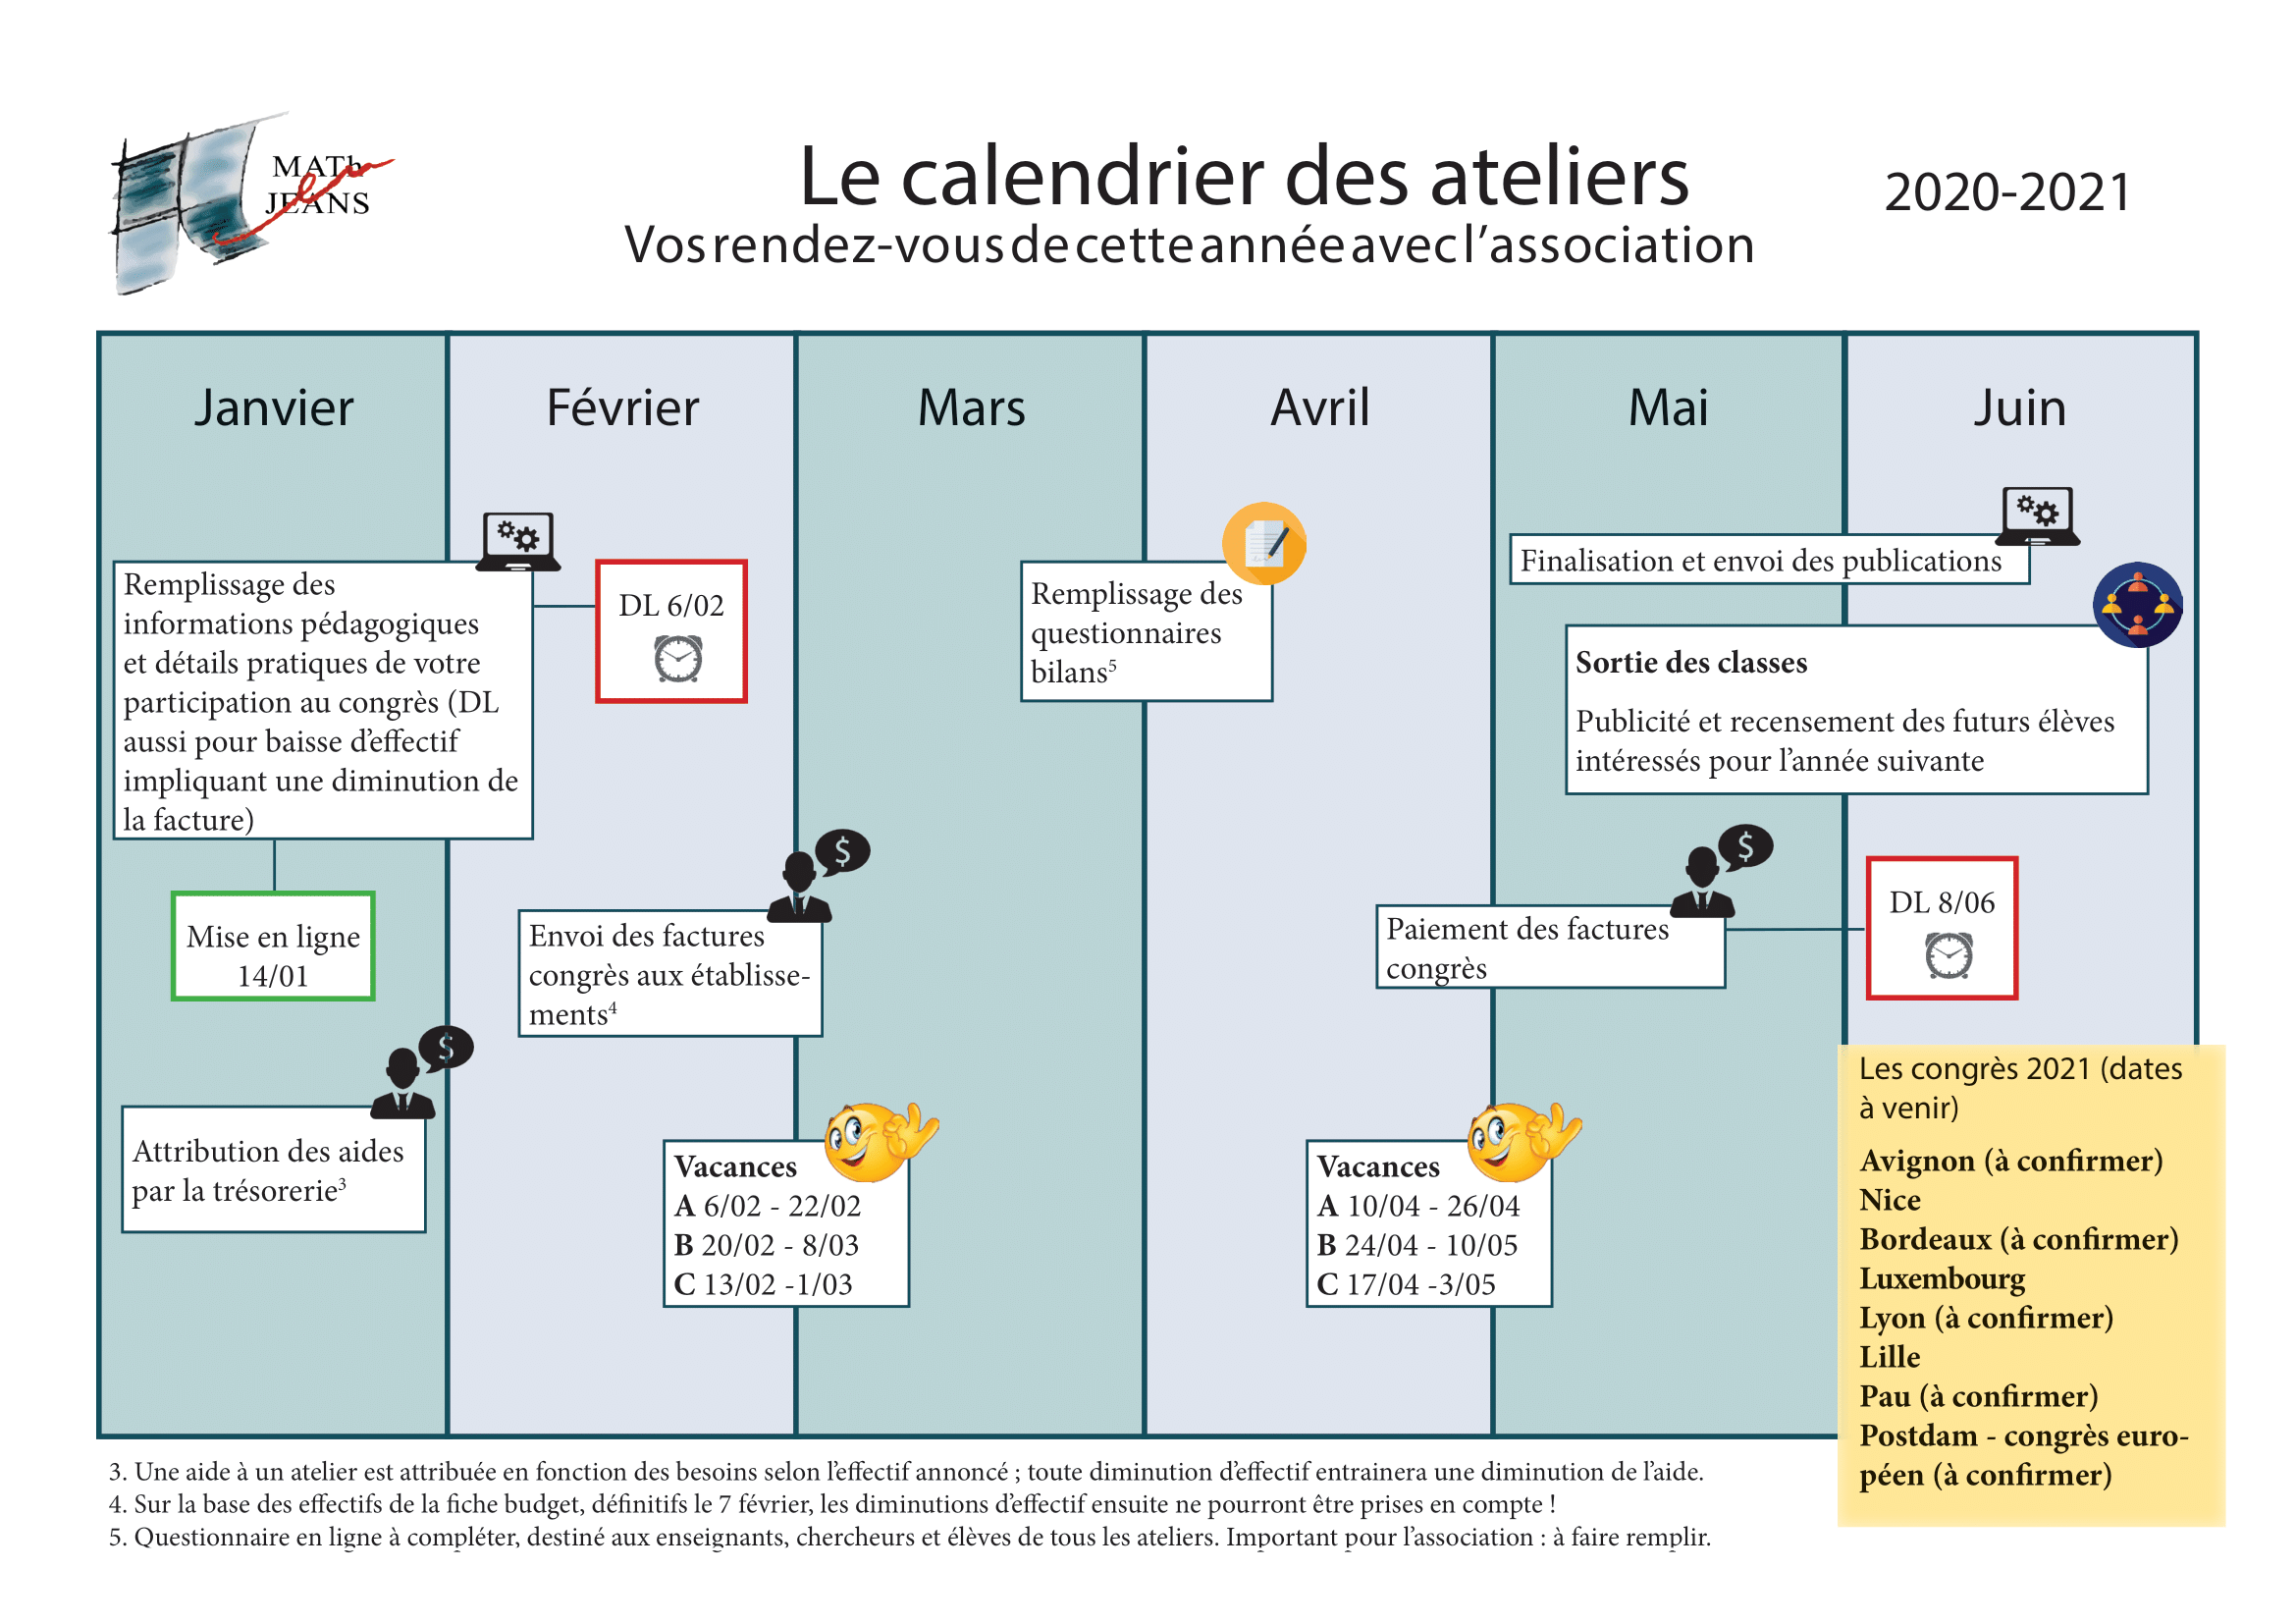 Calendrier ateliers Grand Ouest 2019/2020